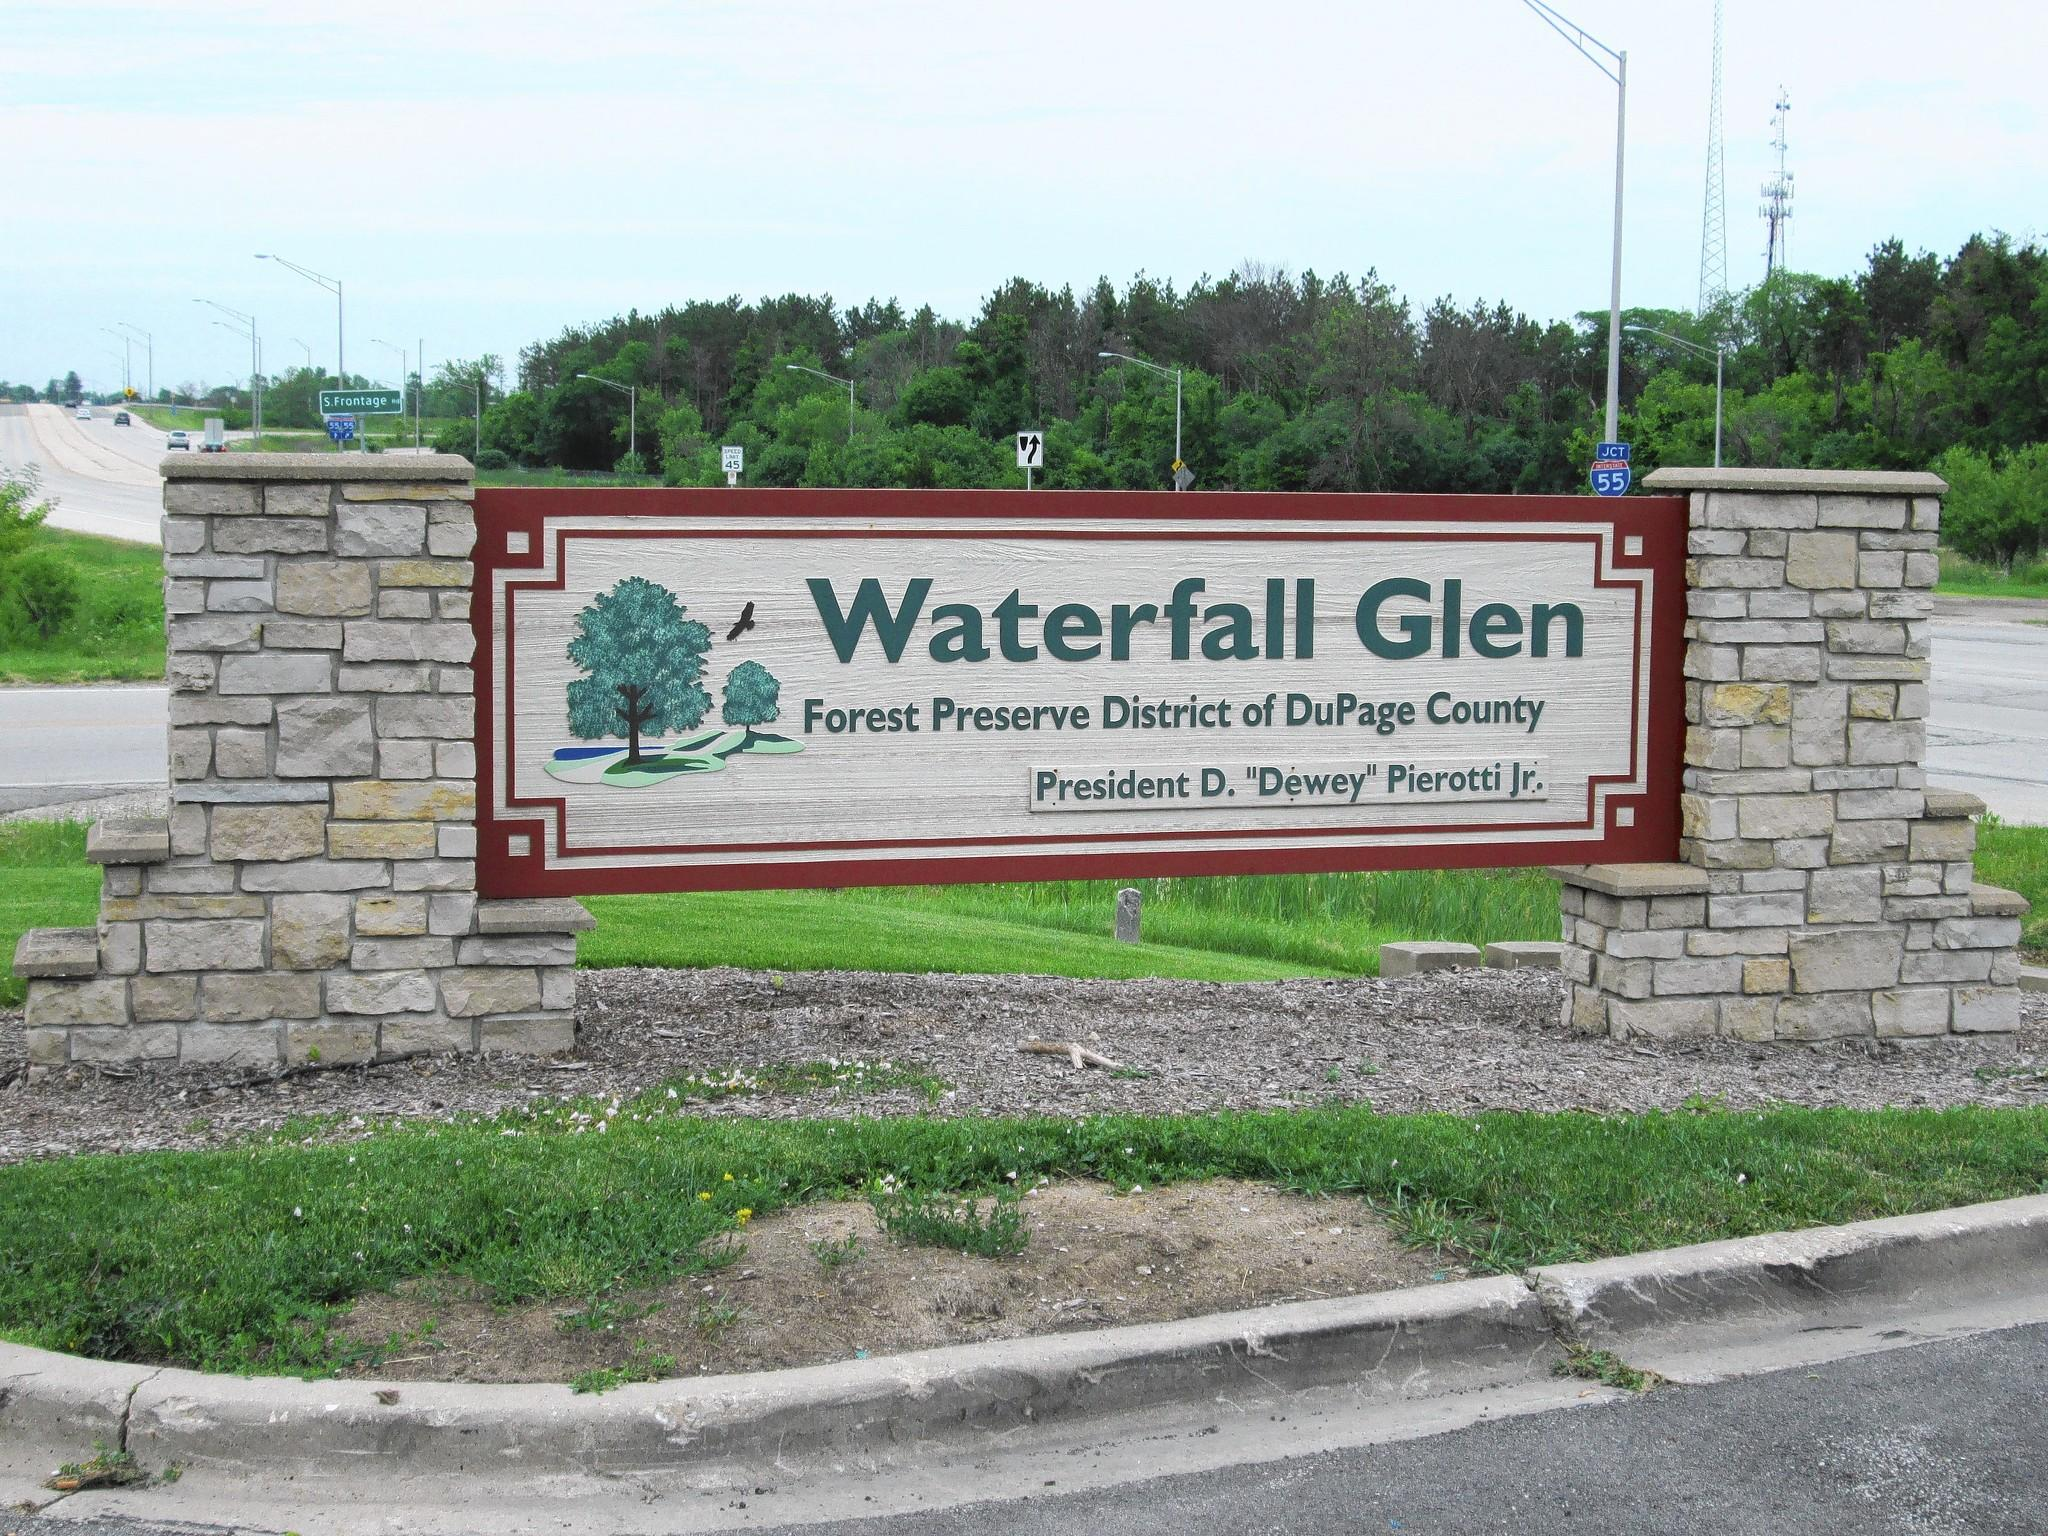 An insecticide will be sprayed in Burr Ridge and the Waterfall Glen Forest Preserve near Darien.